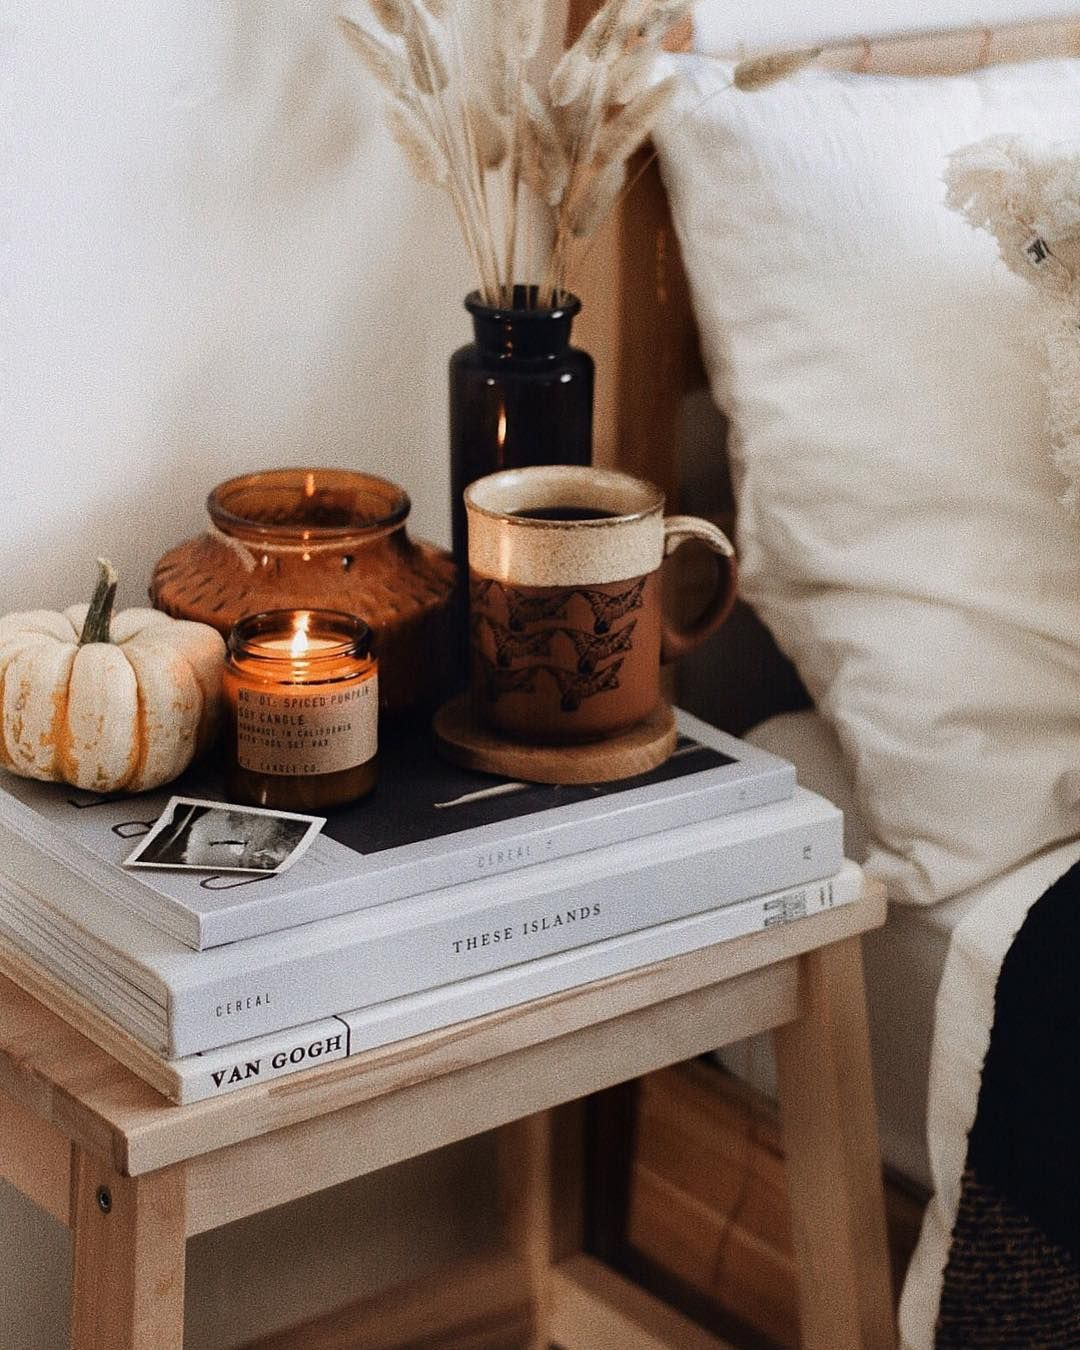 "Polly Florence on Instagram: ""Those cosy autumn days with coffee and candles burning 🍂✨ How are you spending your weekend loves? We took another trip to the pumpkin…"""